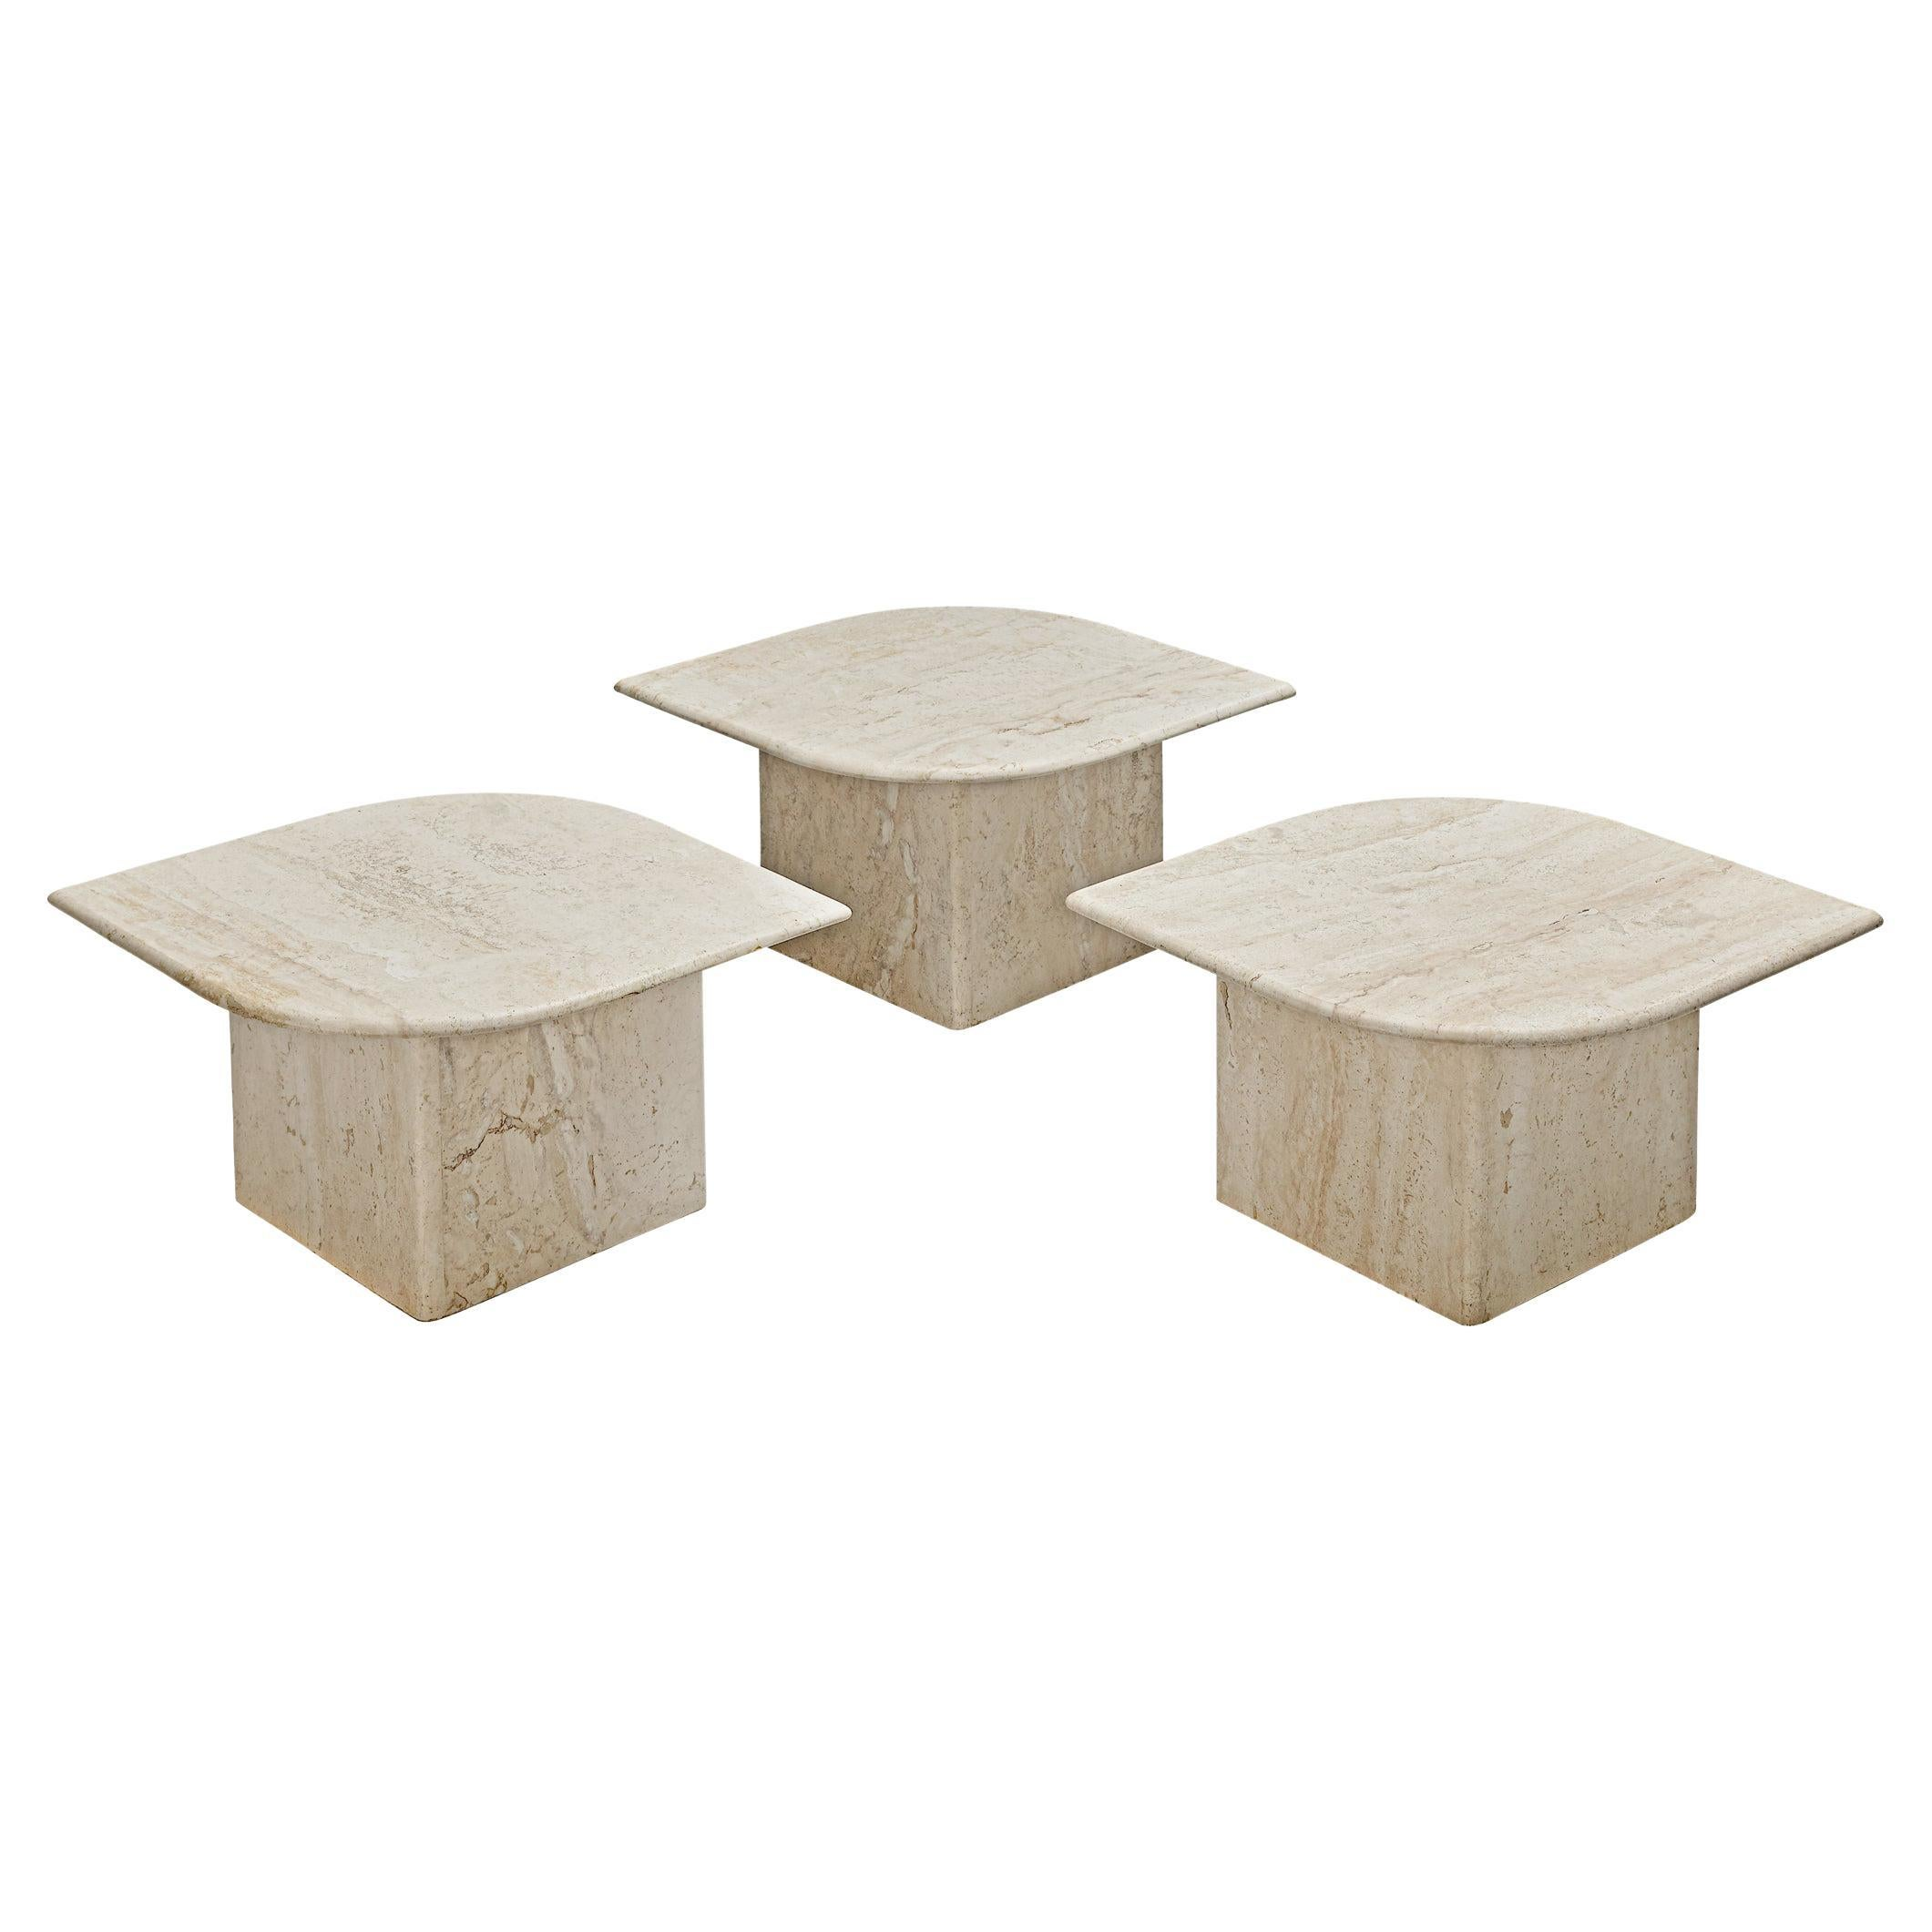 Set of Three Travertine Coffee Tables with Eye-Shaped Top